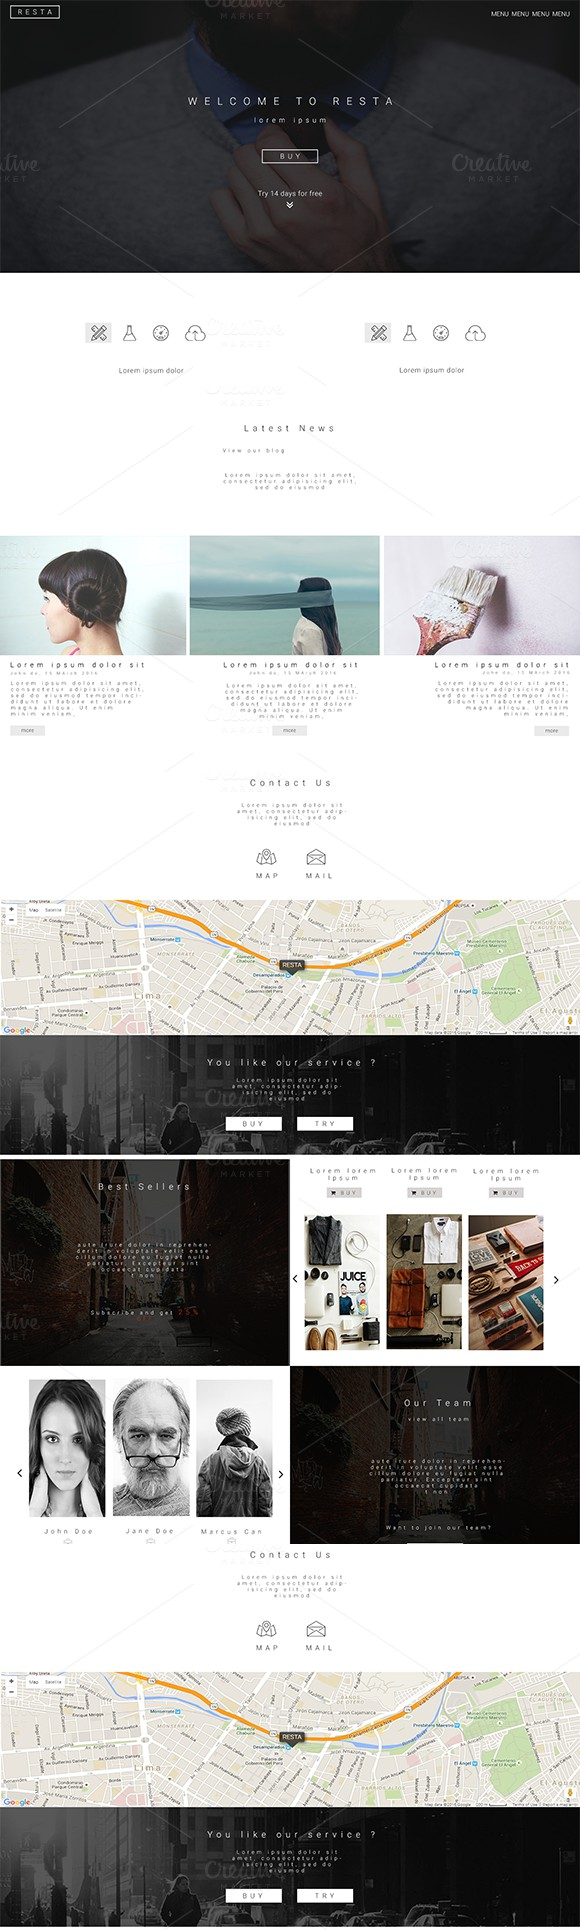 Resta Landing Page - PSD Template. Bootstrap Templates. $4.00